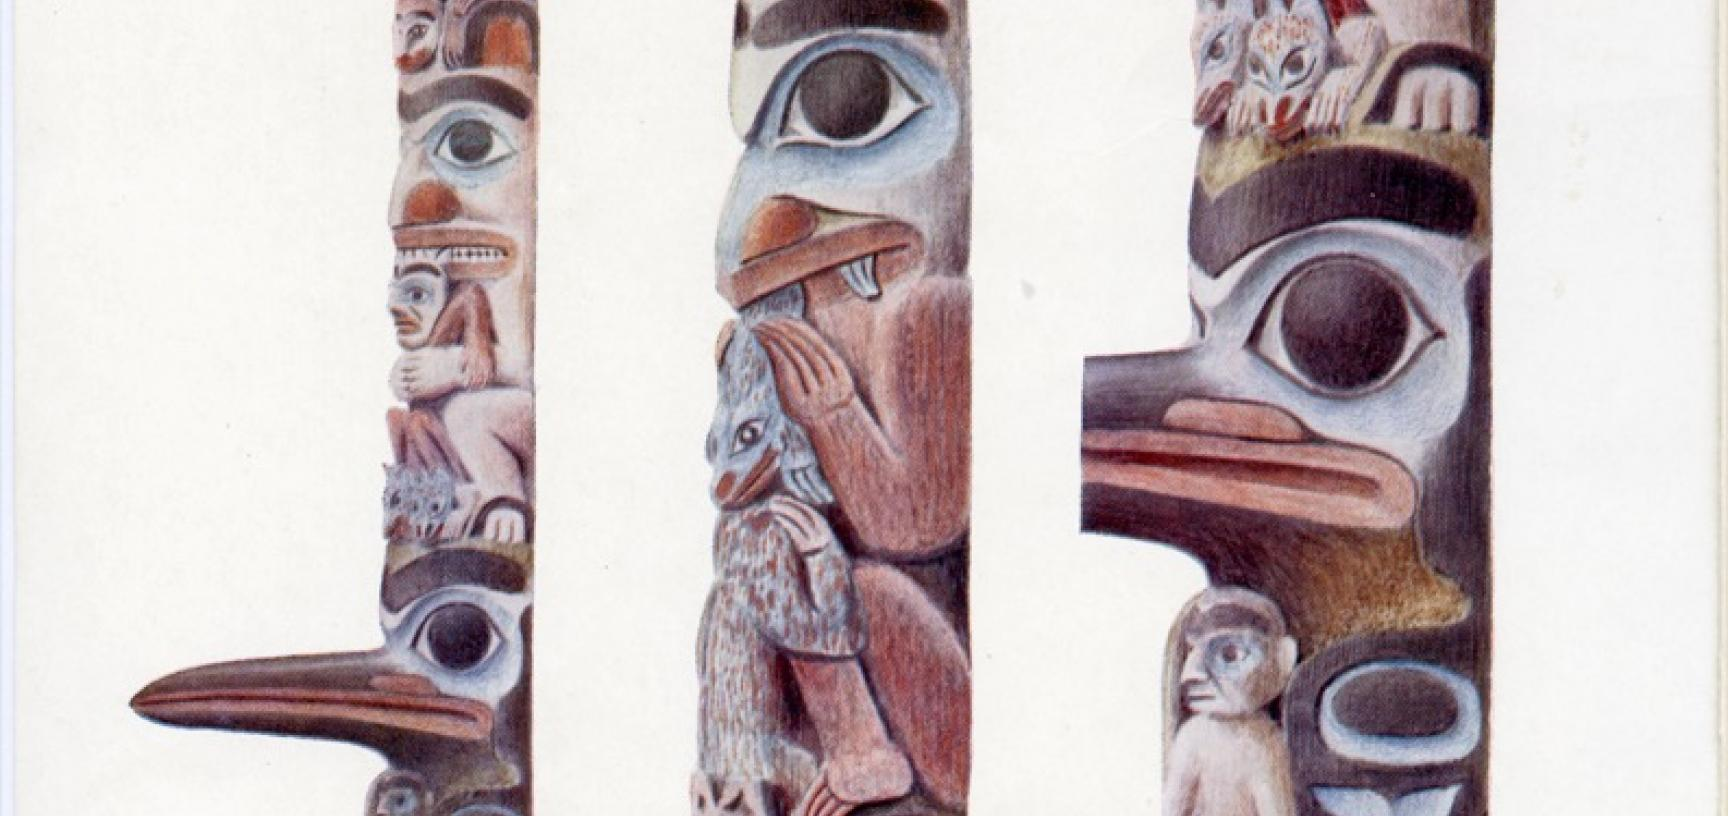 Alfred Robinson's watercolour reproduced in E. B. Tylor's article in the journal Man, 'Note on the Haida Totem-Post lately erected in the Pitt Rivers Museum at Oxford' (1902).